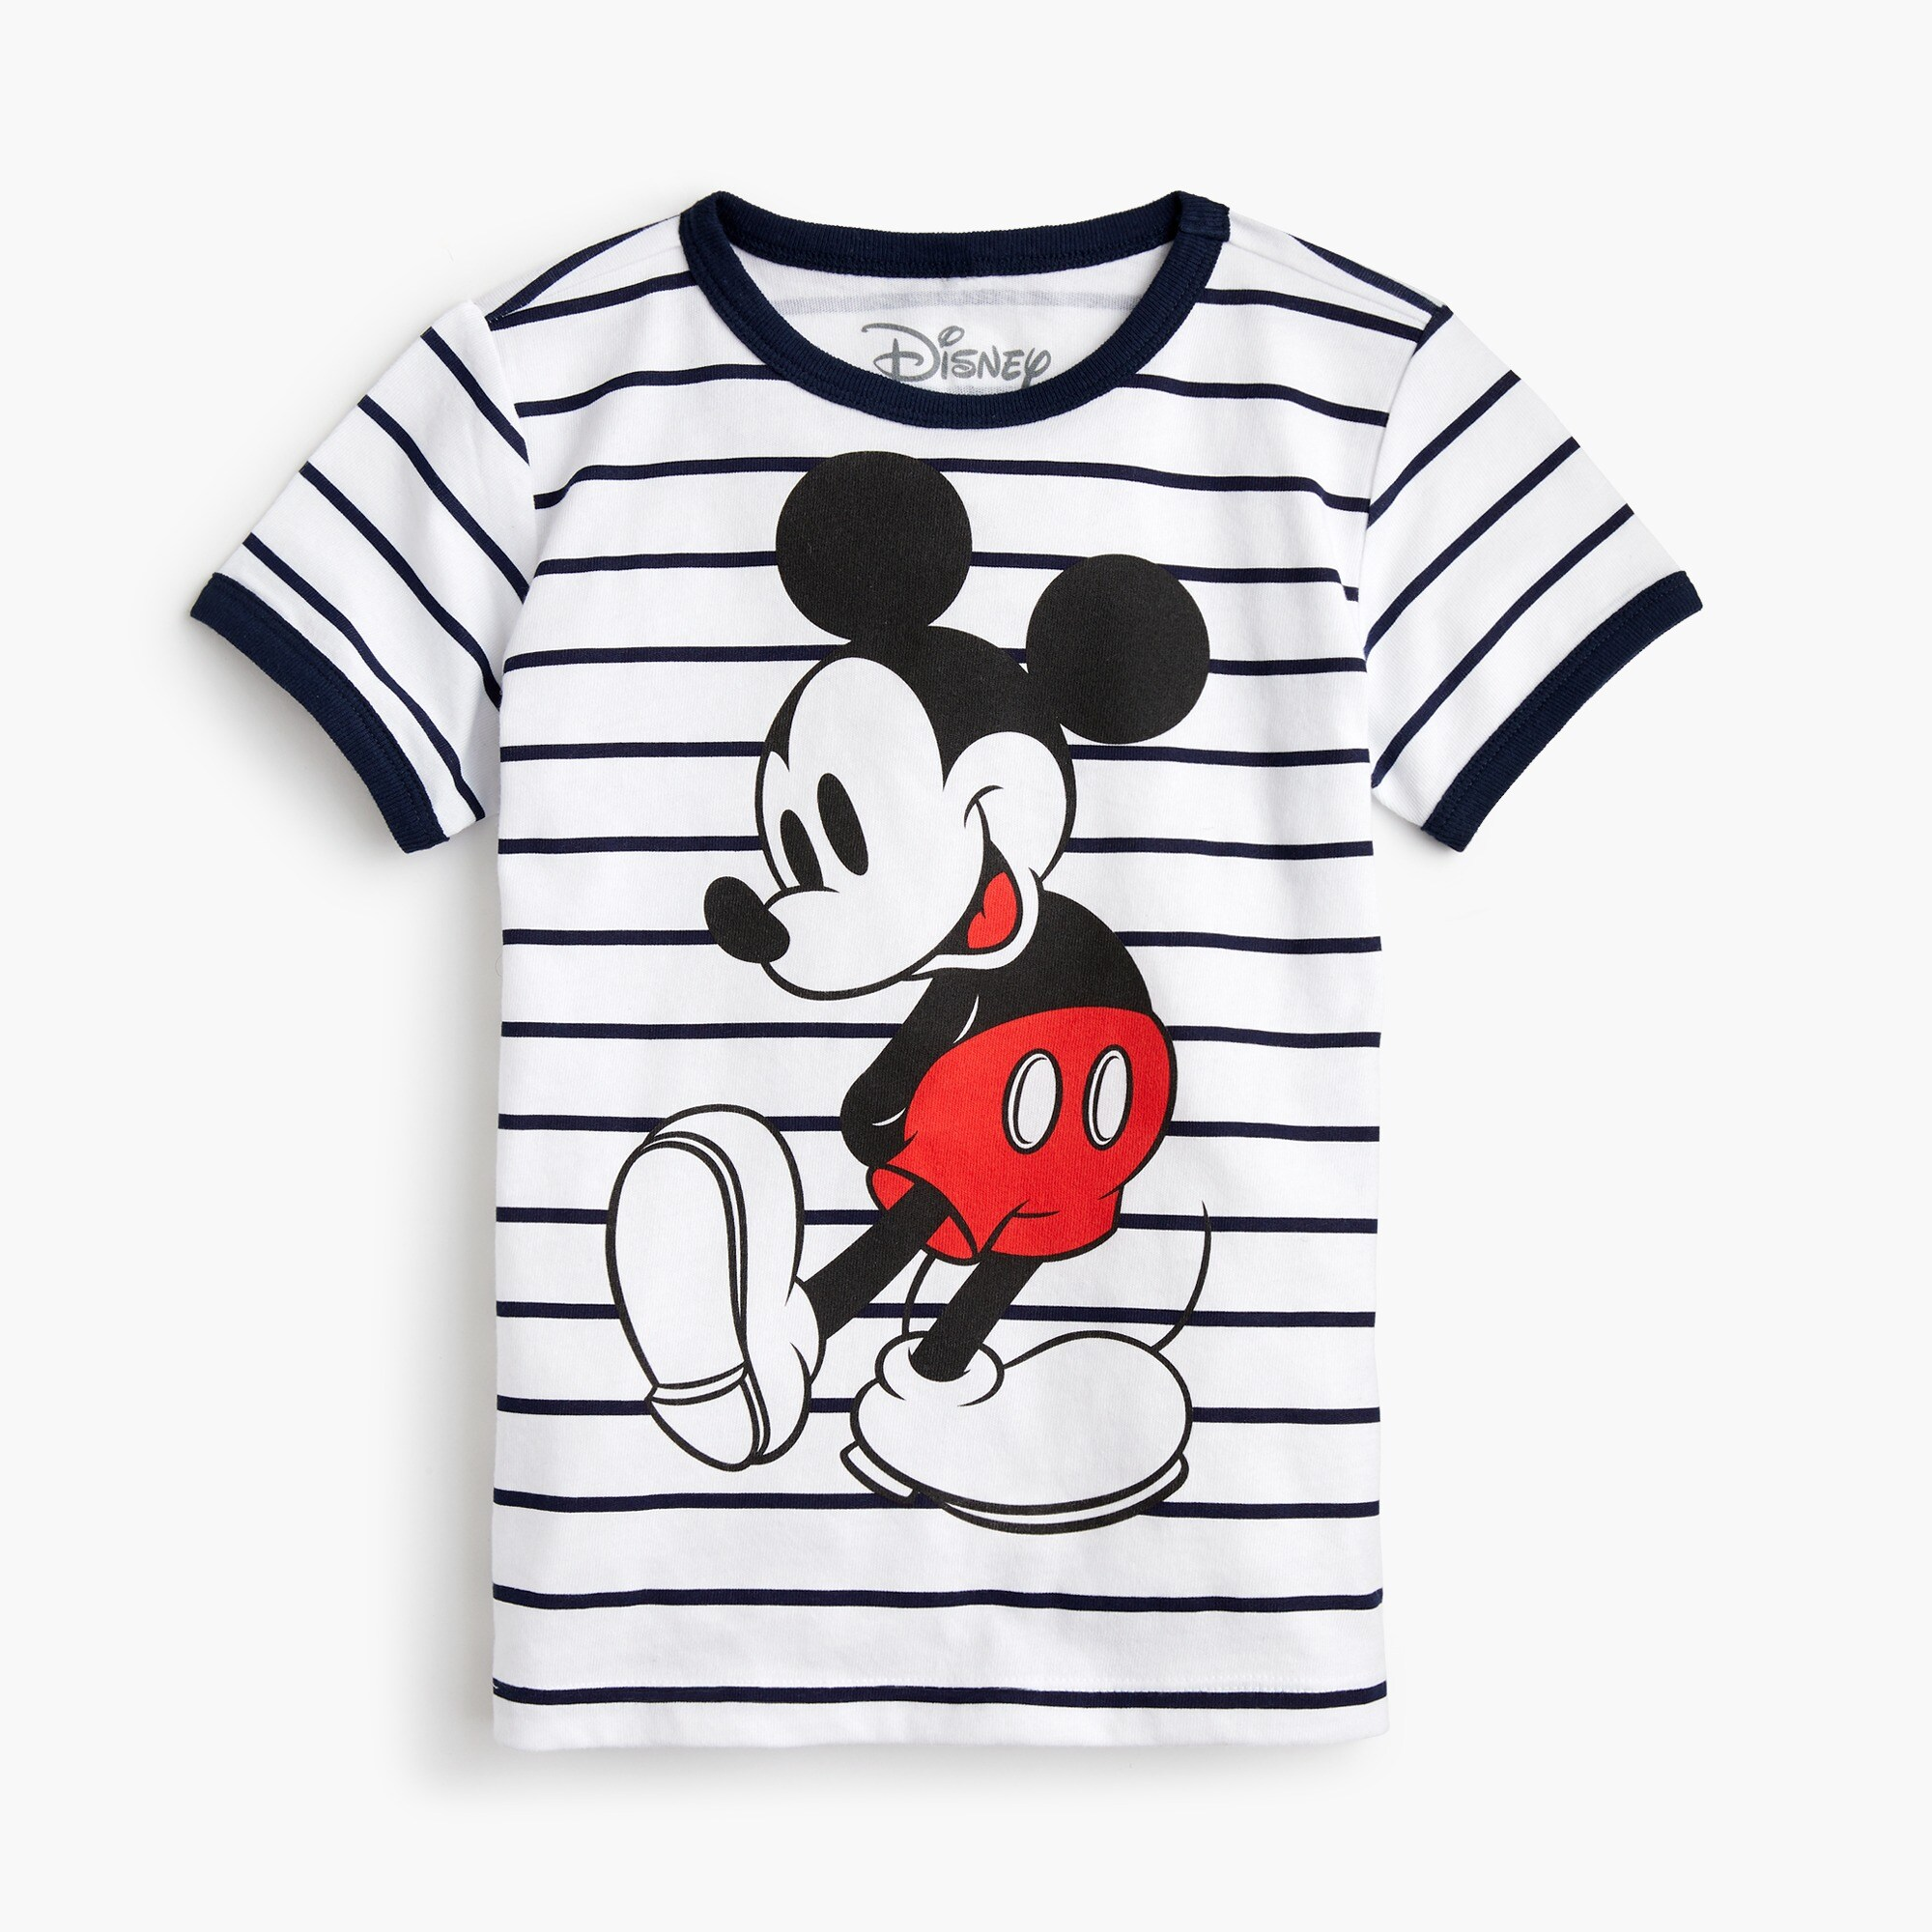 Kids' Disney® for crewcuts Mickey Mouse T-shirt boy new arrivals c